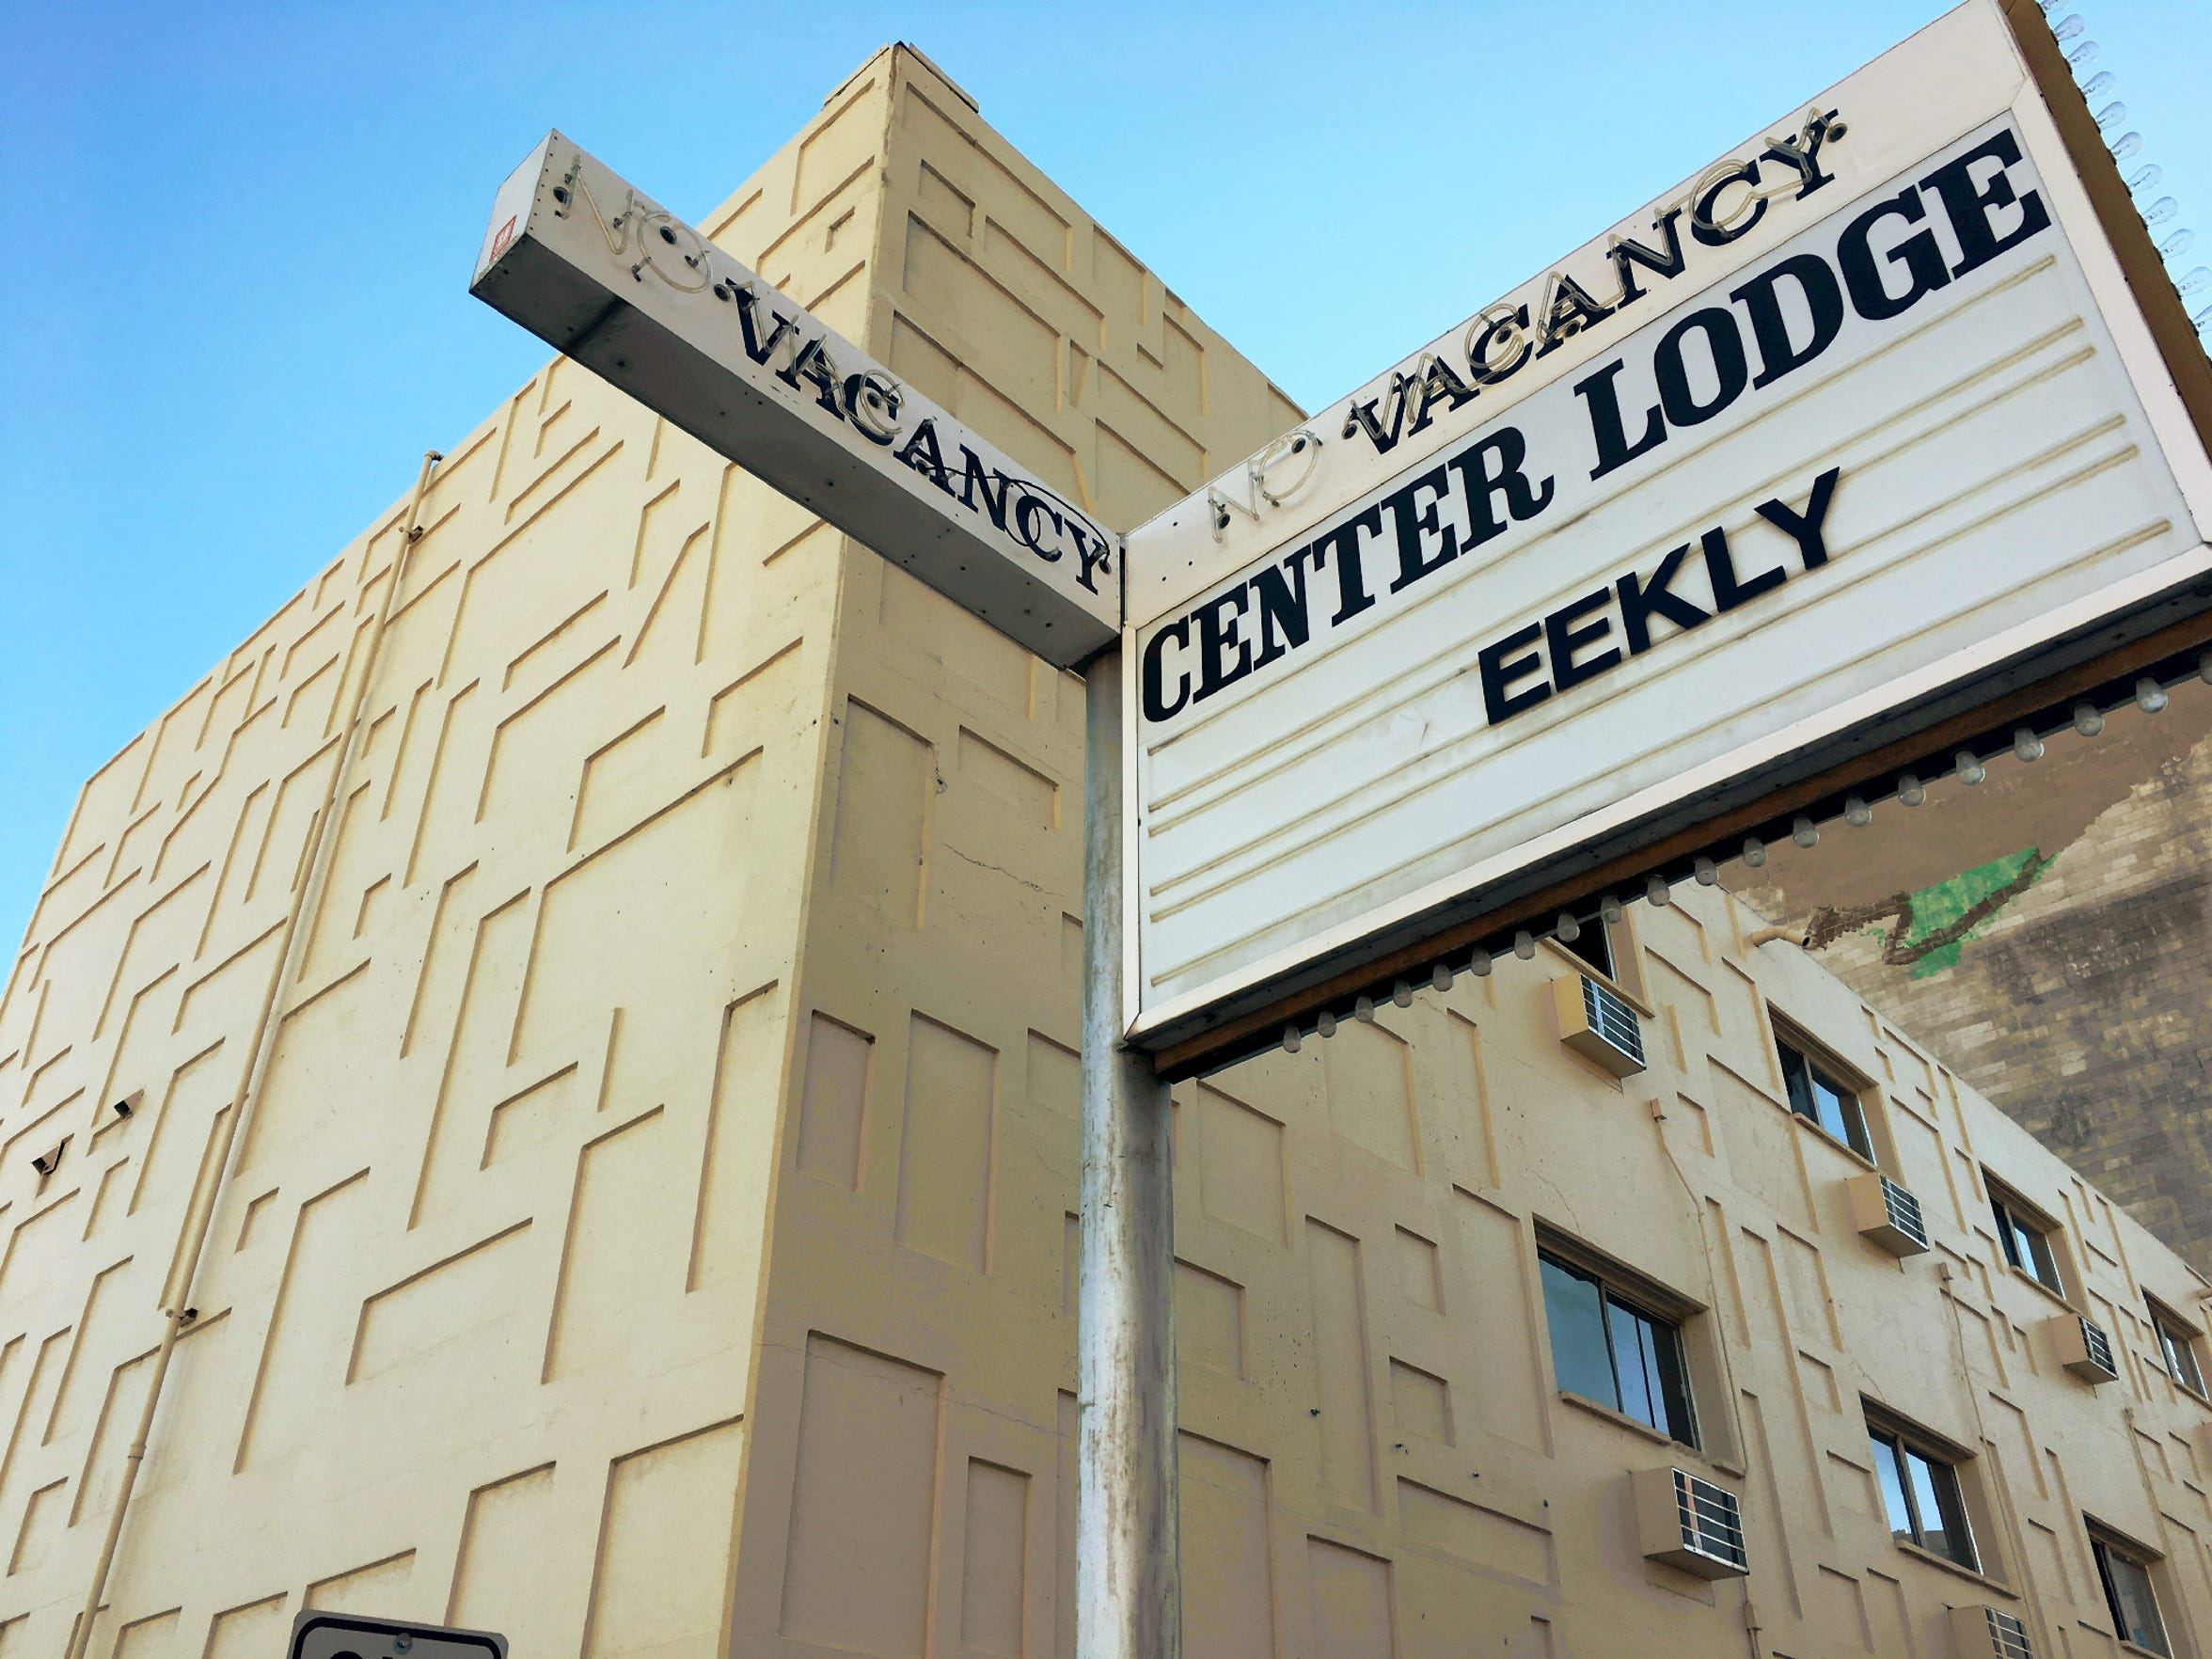 The Center Lodge, a vacant weekly hotel, has been stripped of all value.